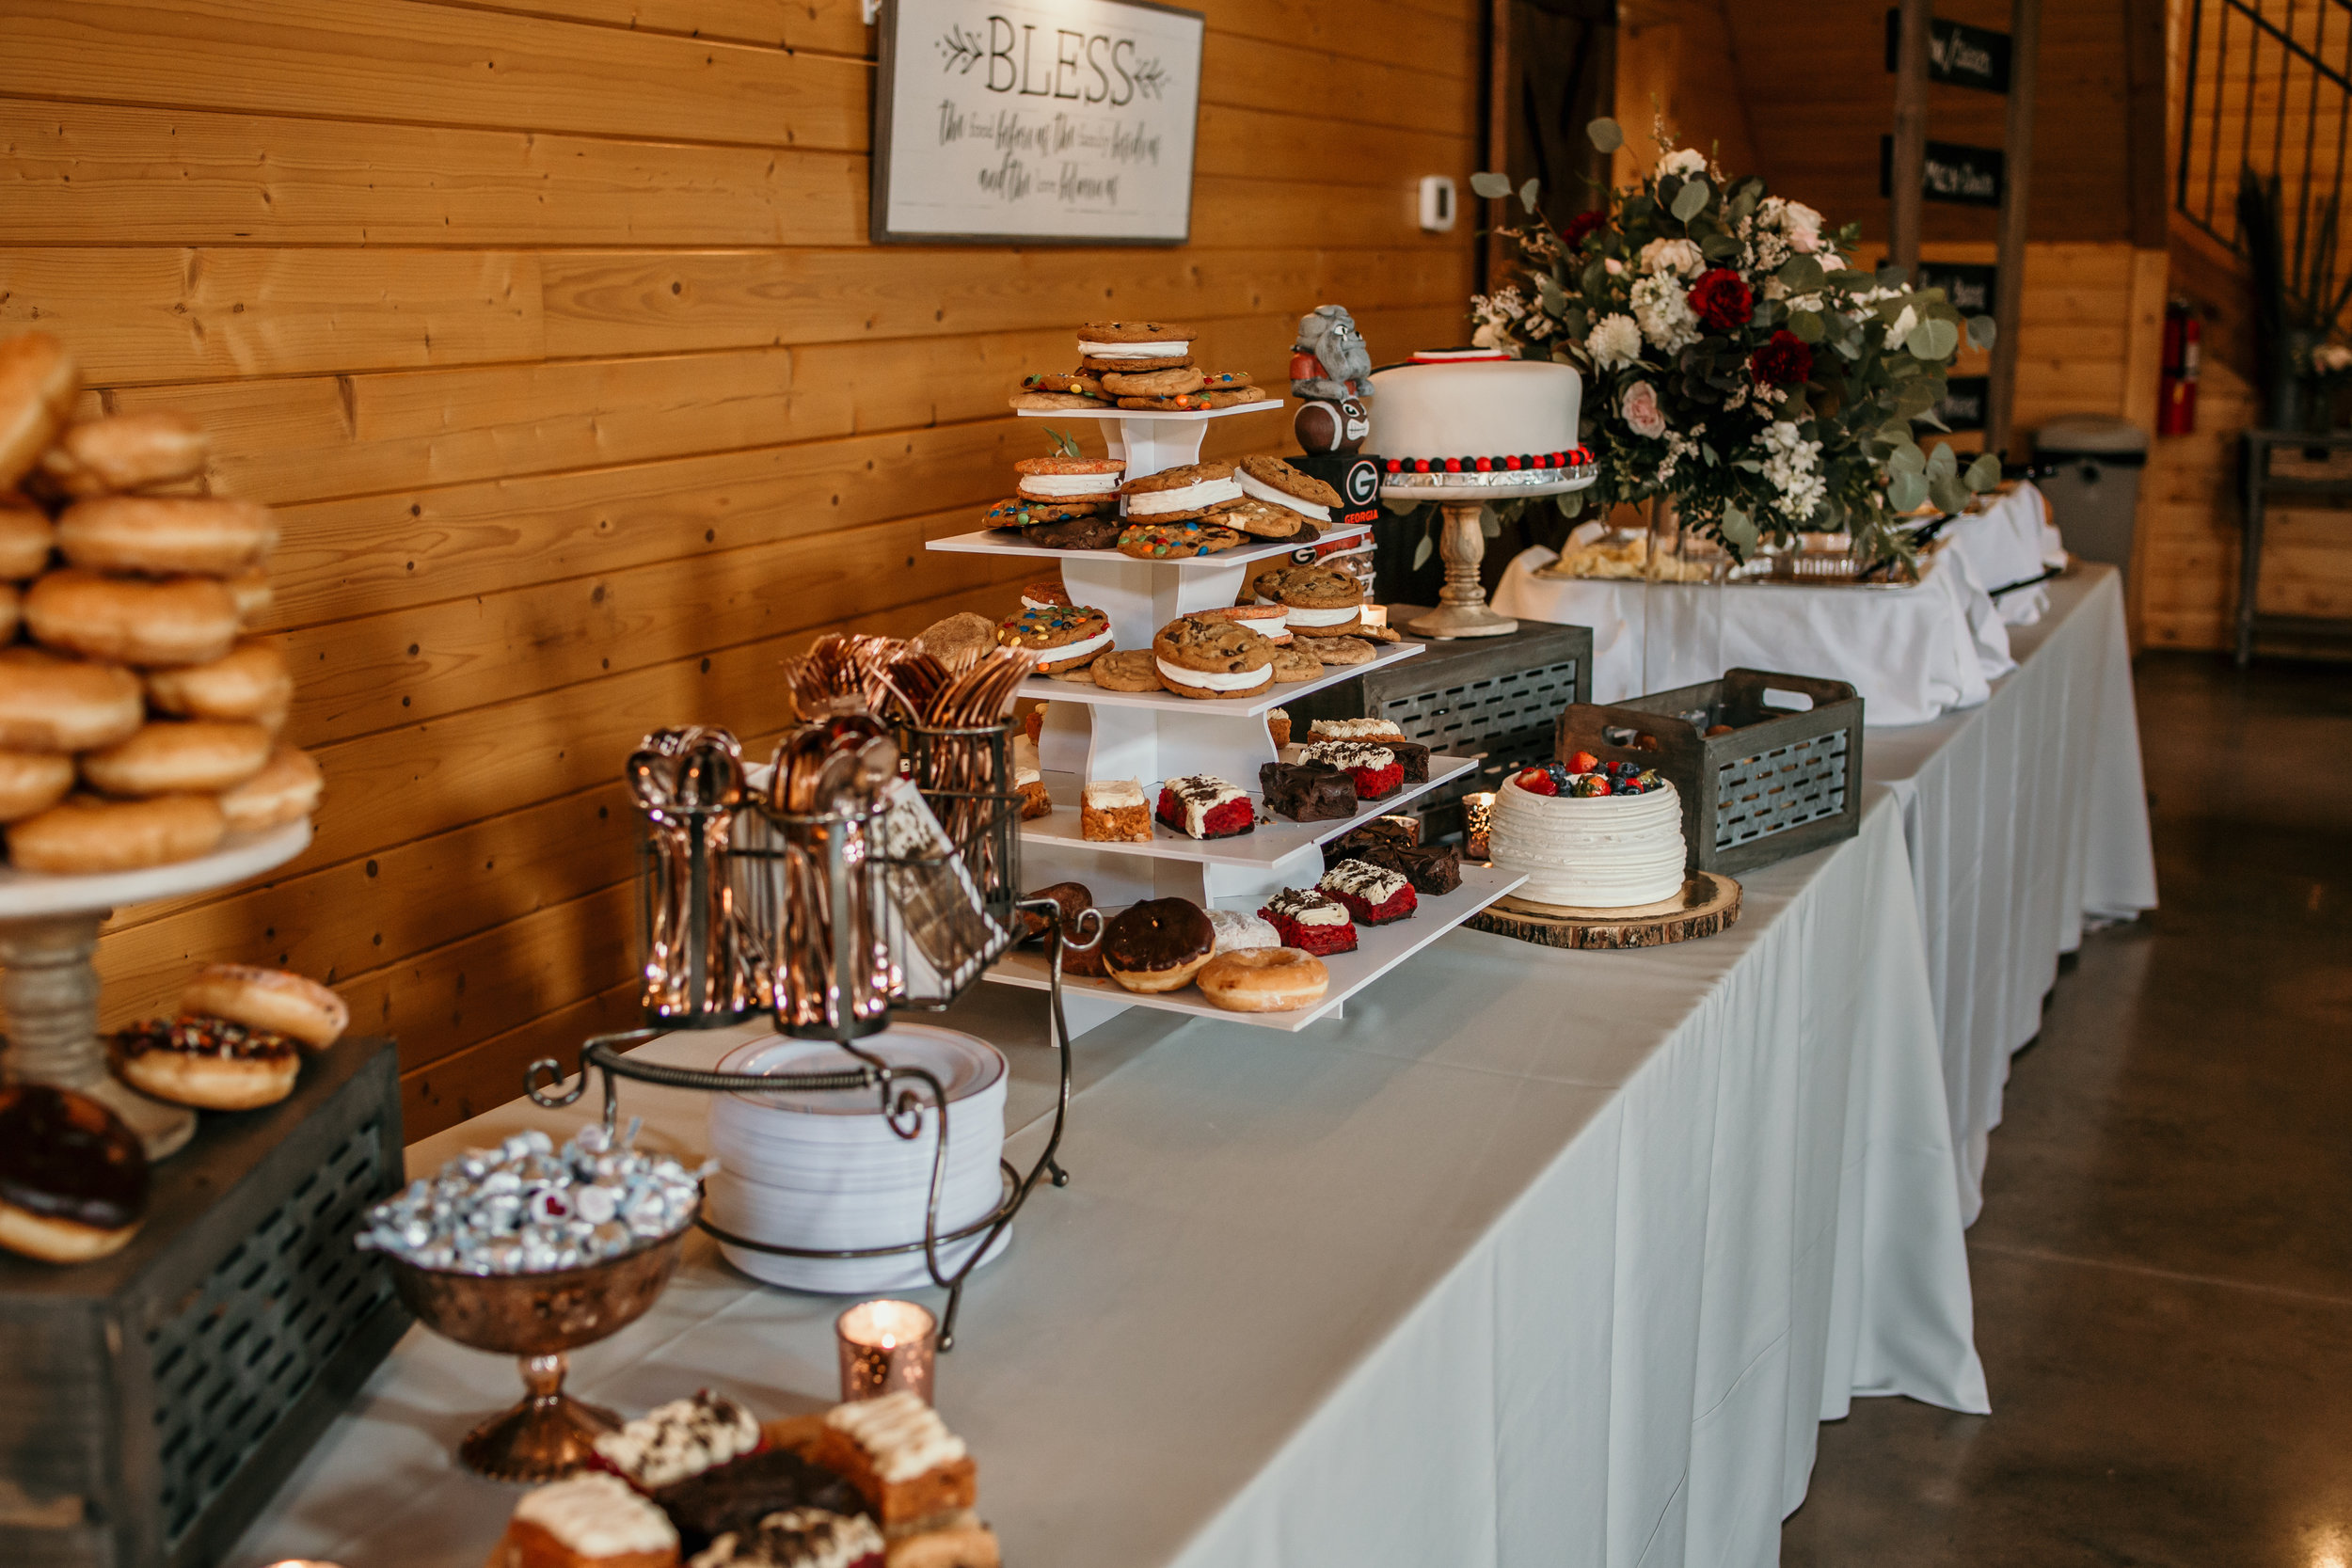 Check out this dessert table! Sundays weddings can have all the treats too! pc: Molly Rice Photography